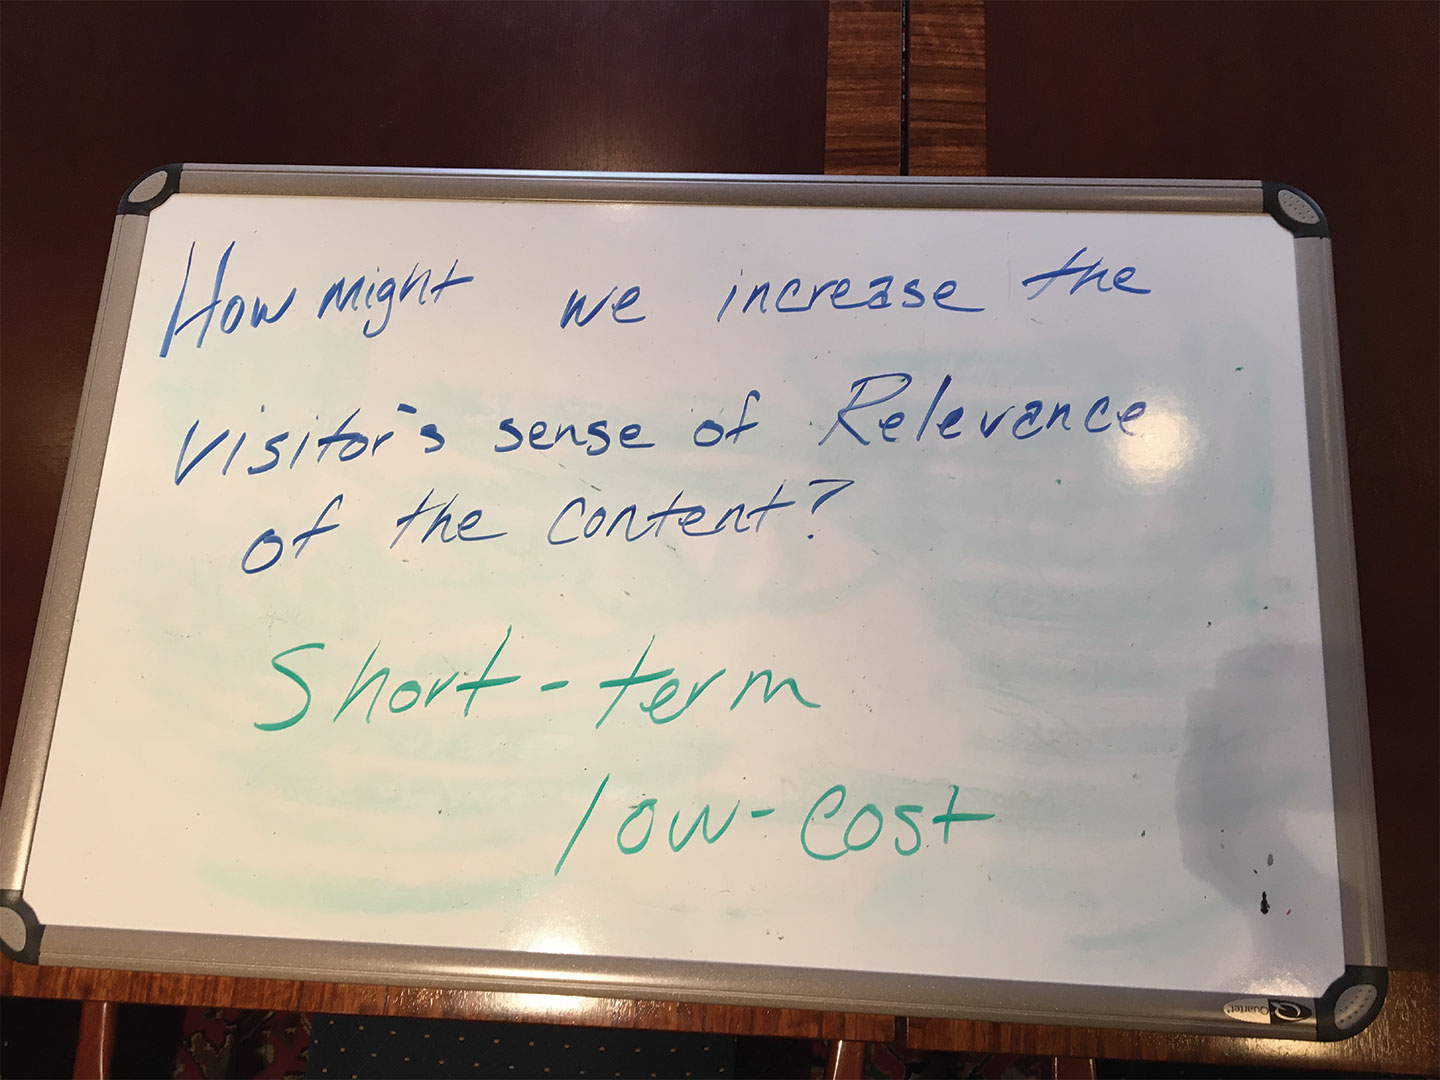 A whiteboard reads How Might We Increase the Visitor's sense of Relevance of our content; short-term; low-cost